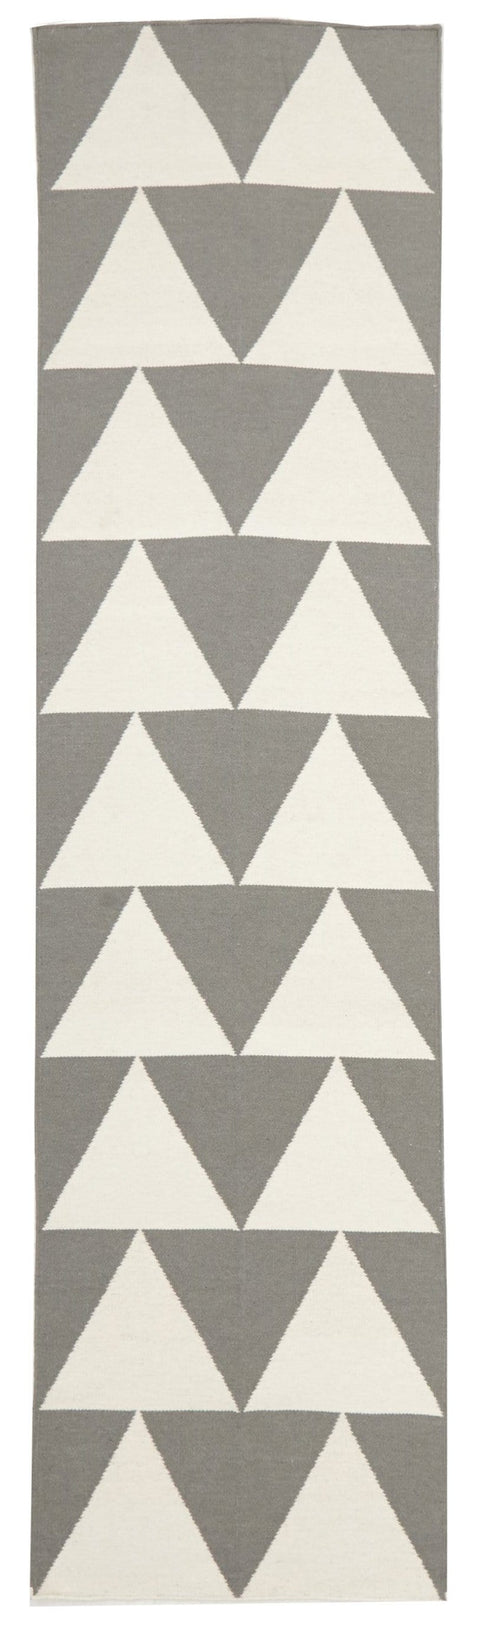 Turku Grey & White Triangle Flatweave Runner Rug